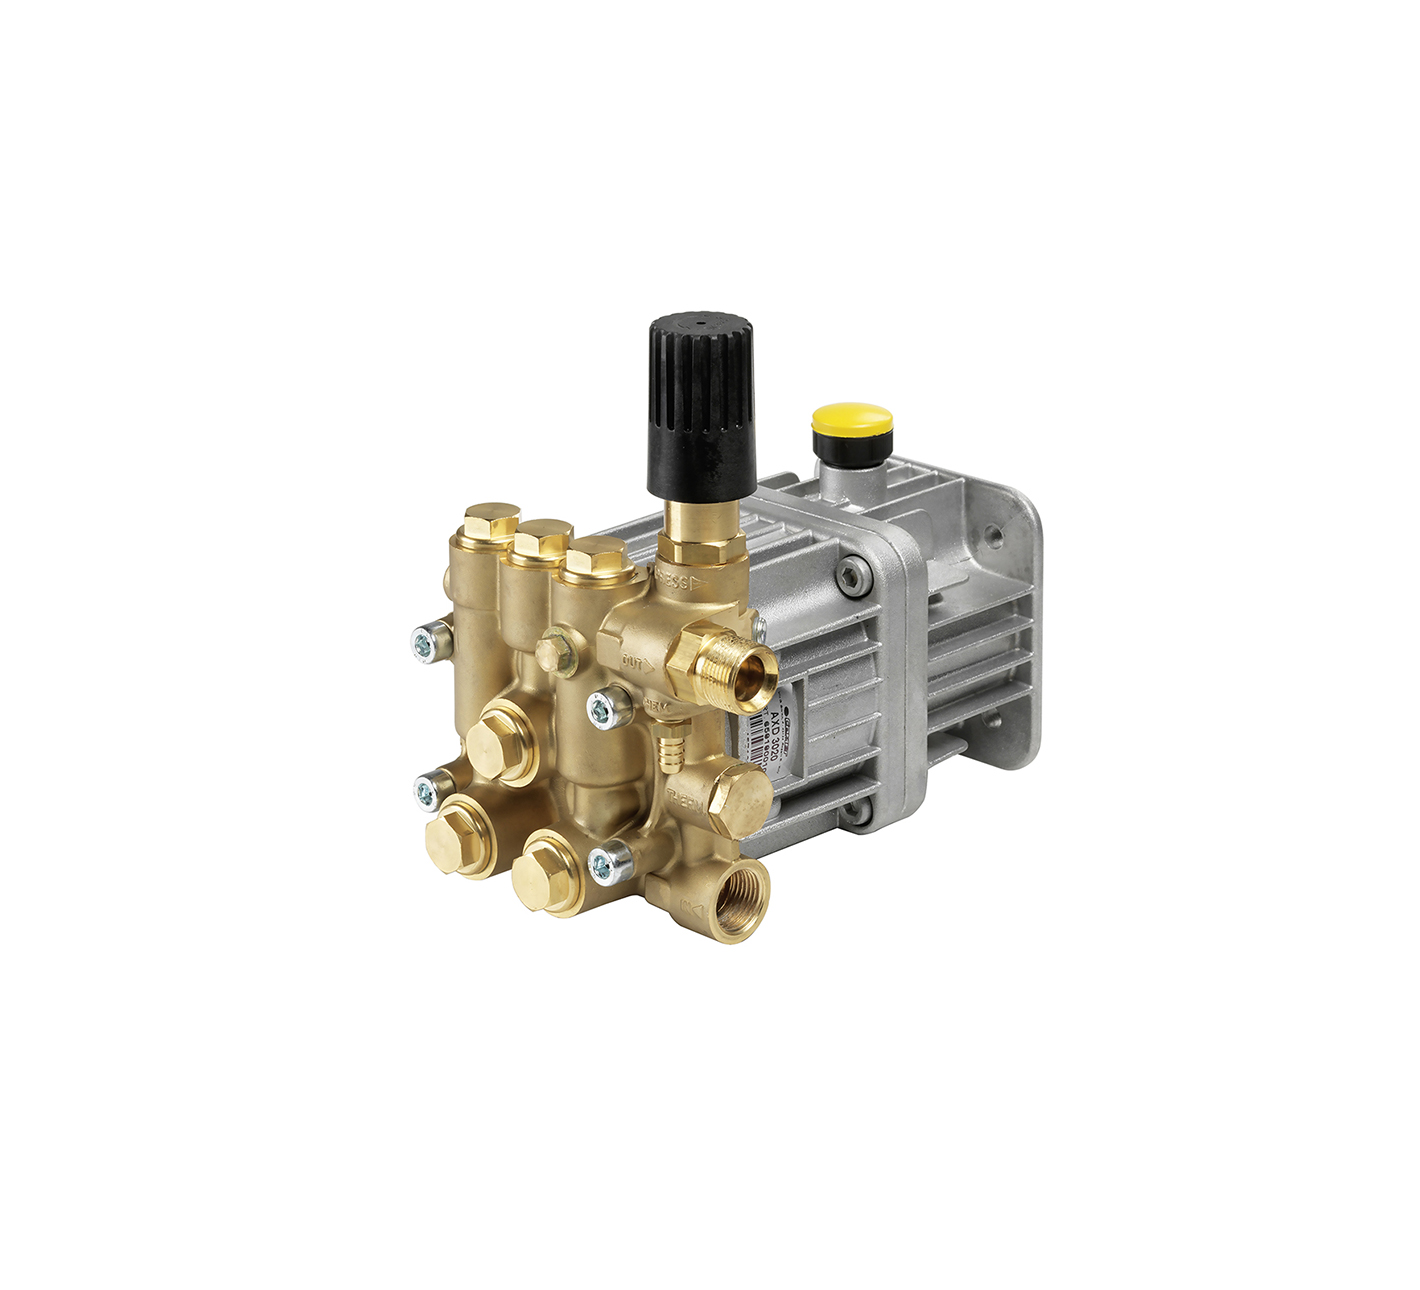 AXD G 3-4 Comet Industrial Pumps